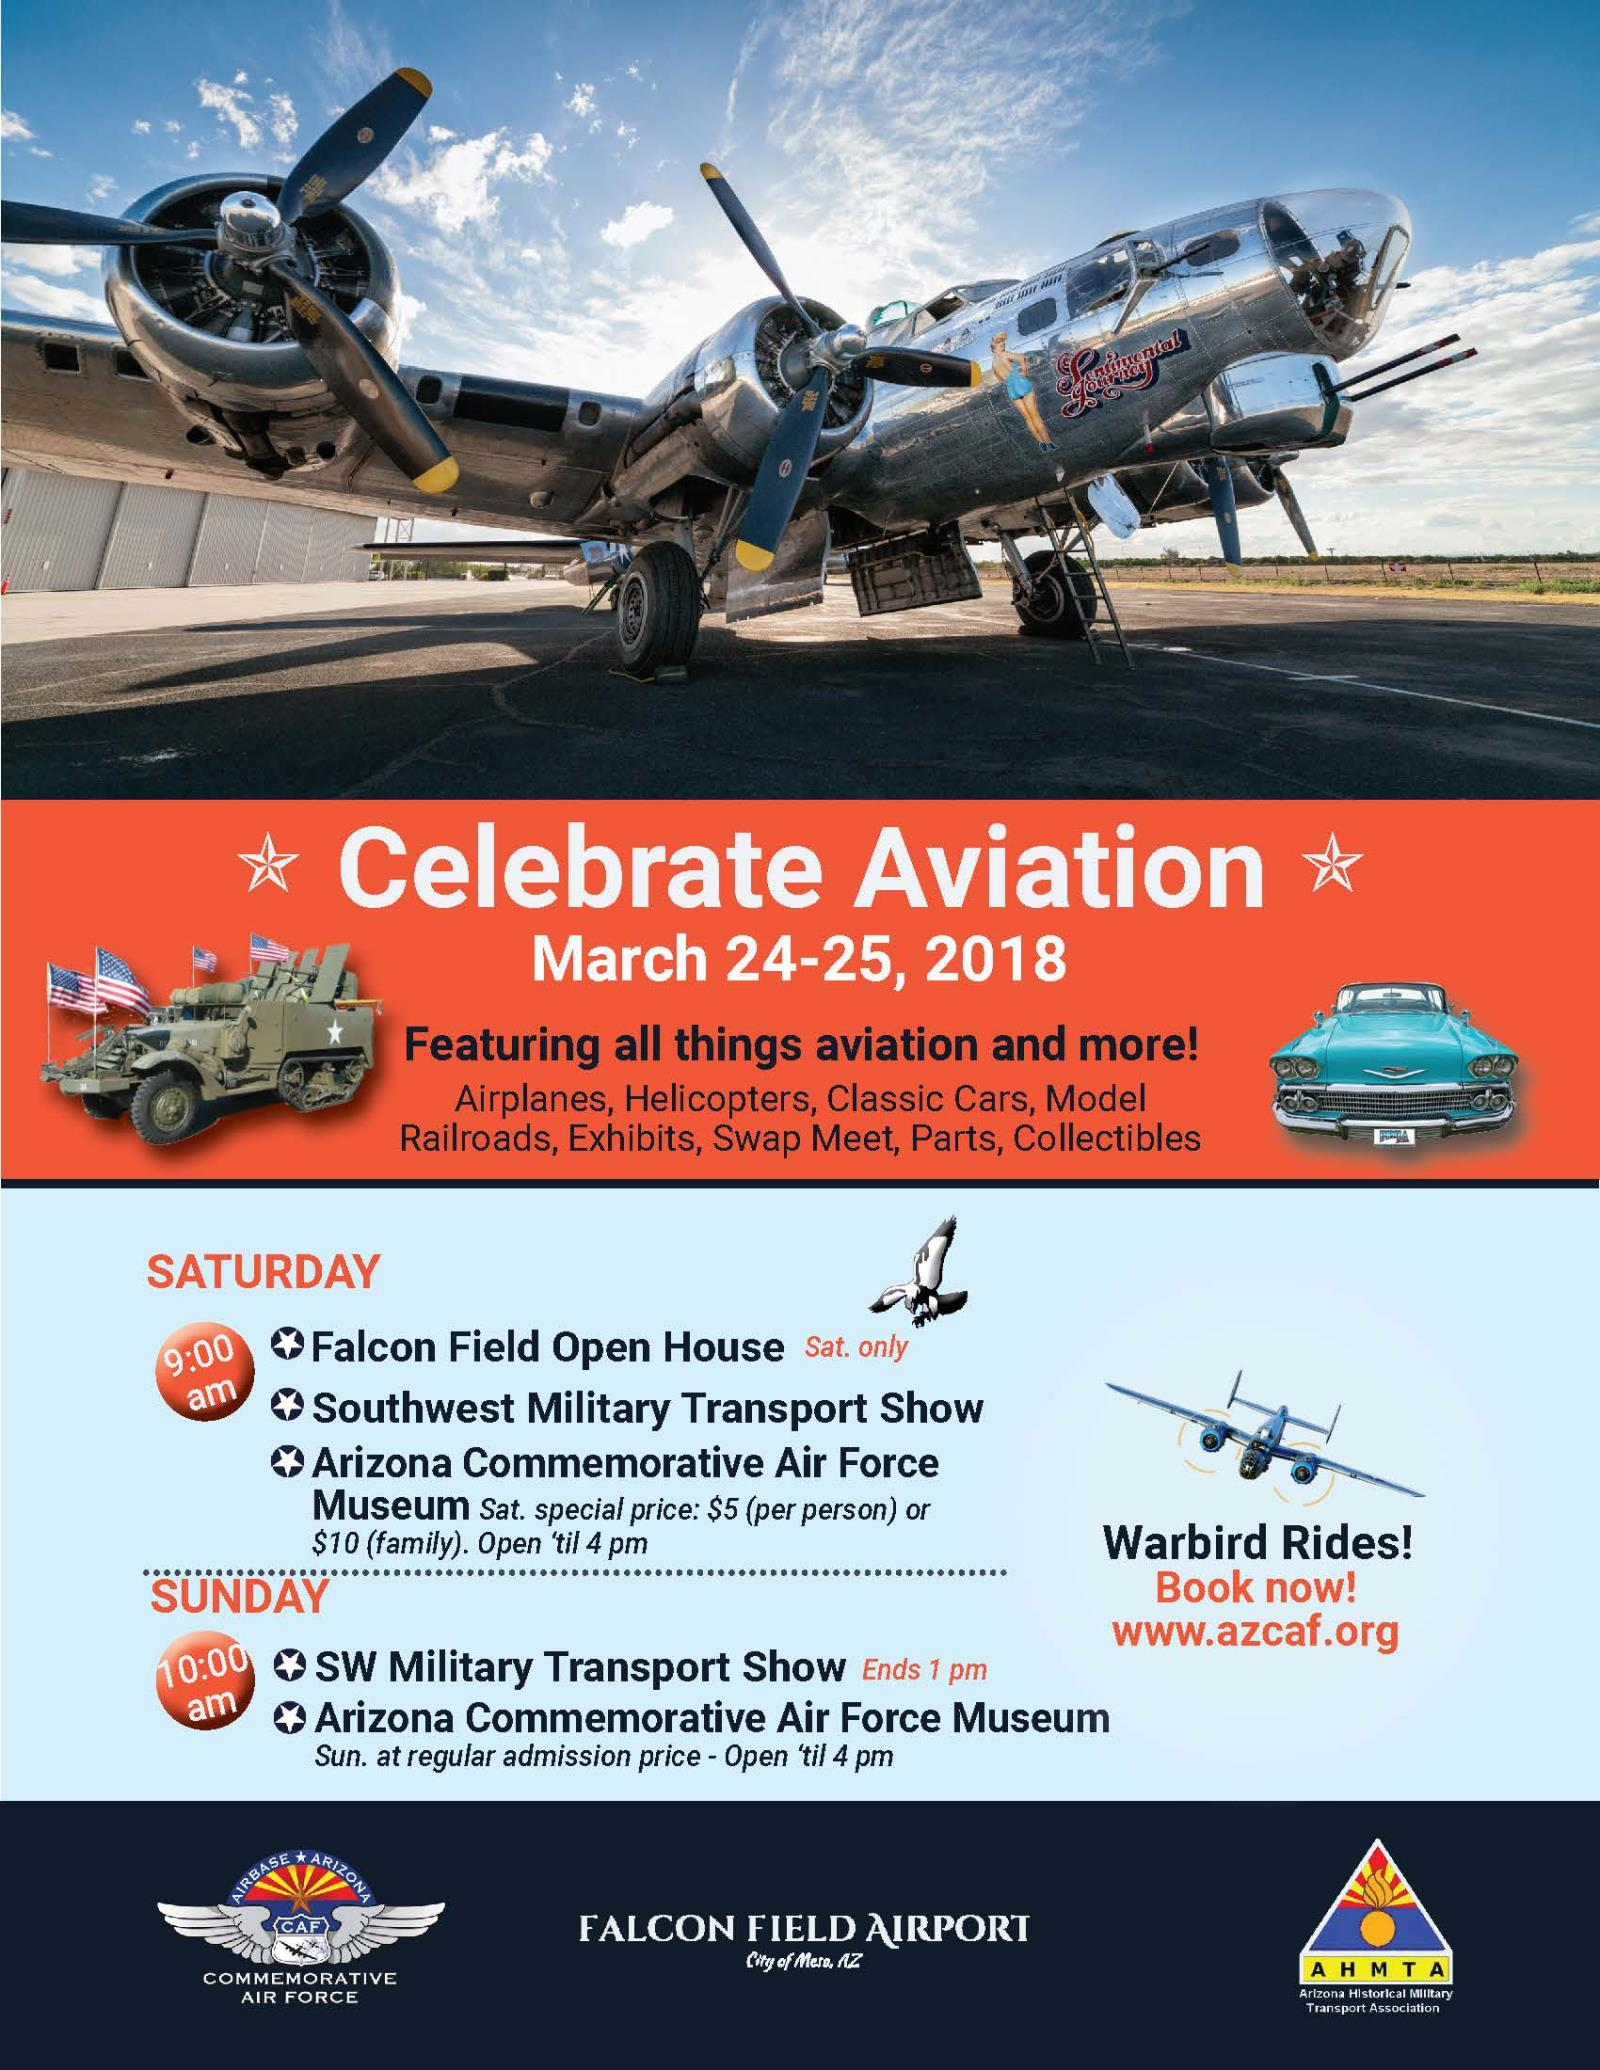 Commemorative Air Force, Falcon Field Open House, Airport Open House, Open House